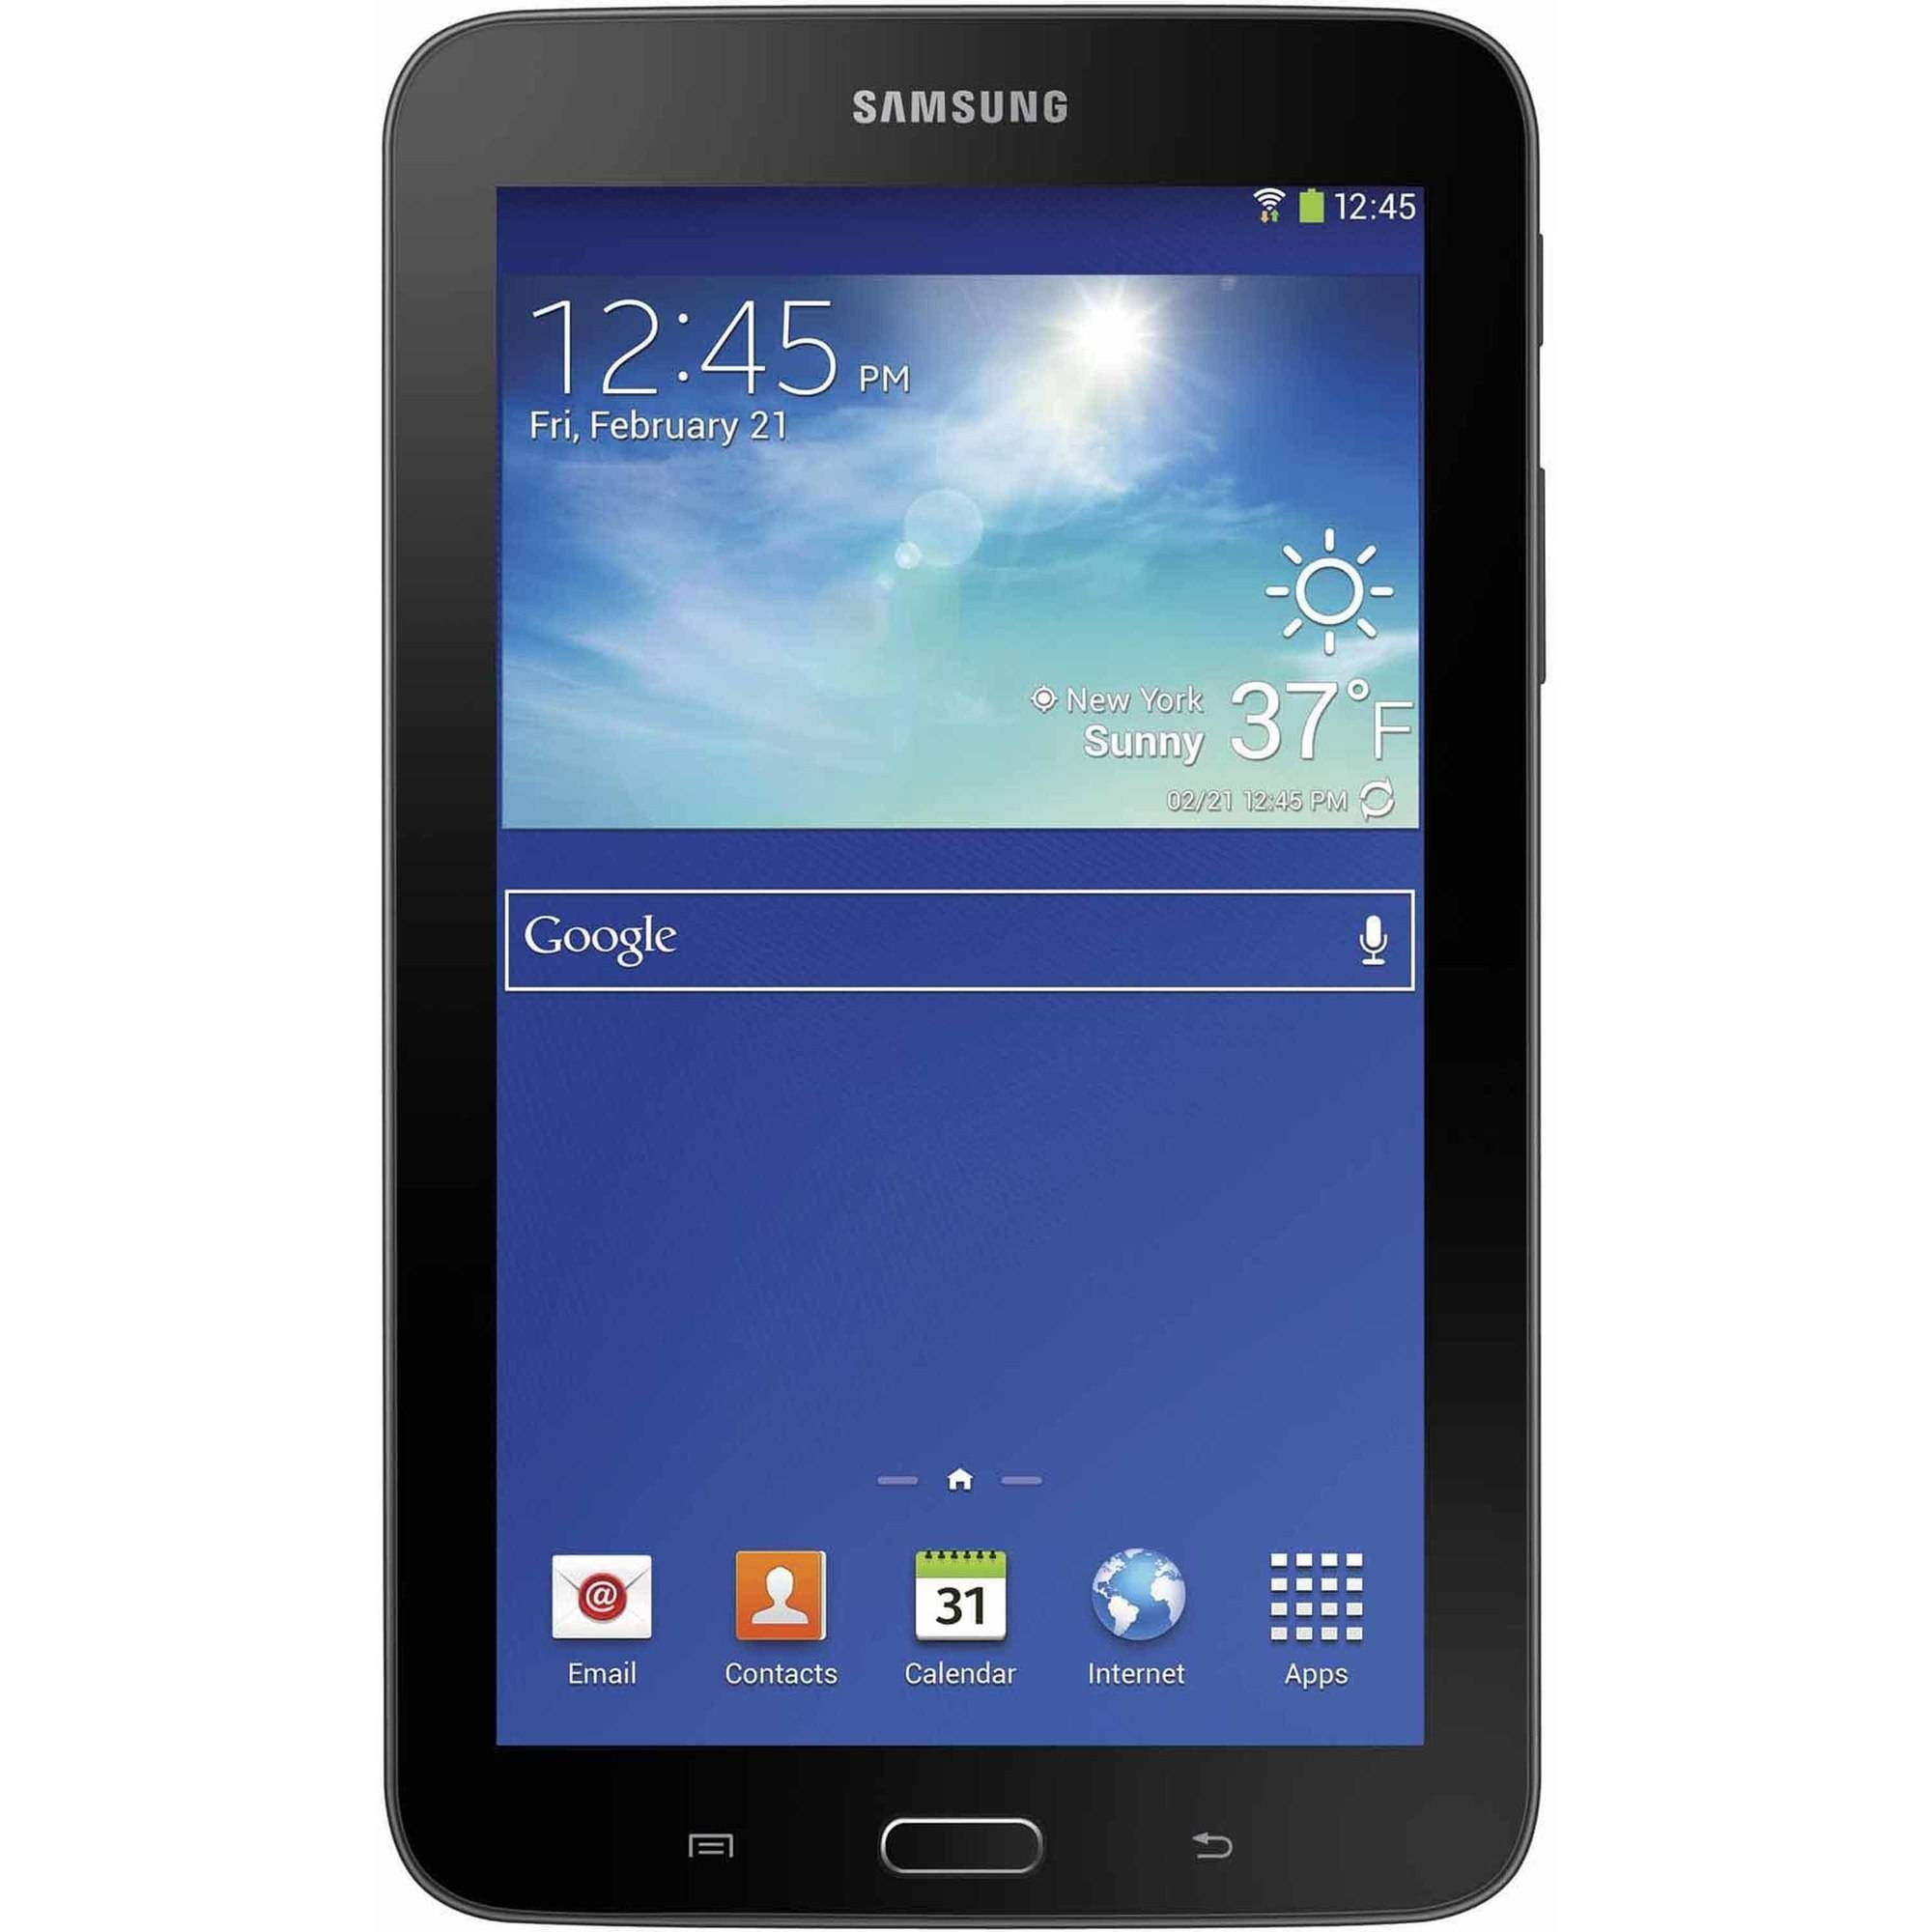 "Refurbished Samsung Galaxy Tab 3 Lite with WiFi 7"" Touchscreen Tablet PC Featuring Android 4.2 (Jelly Bean) Operating System"